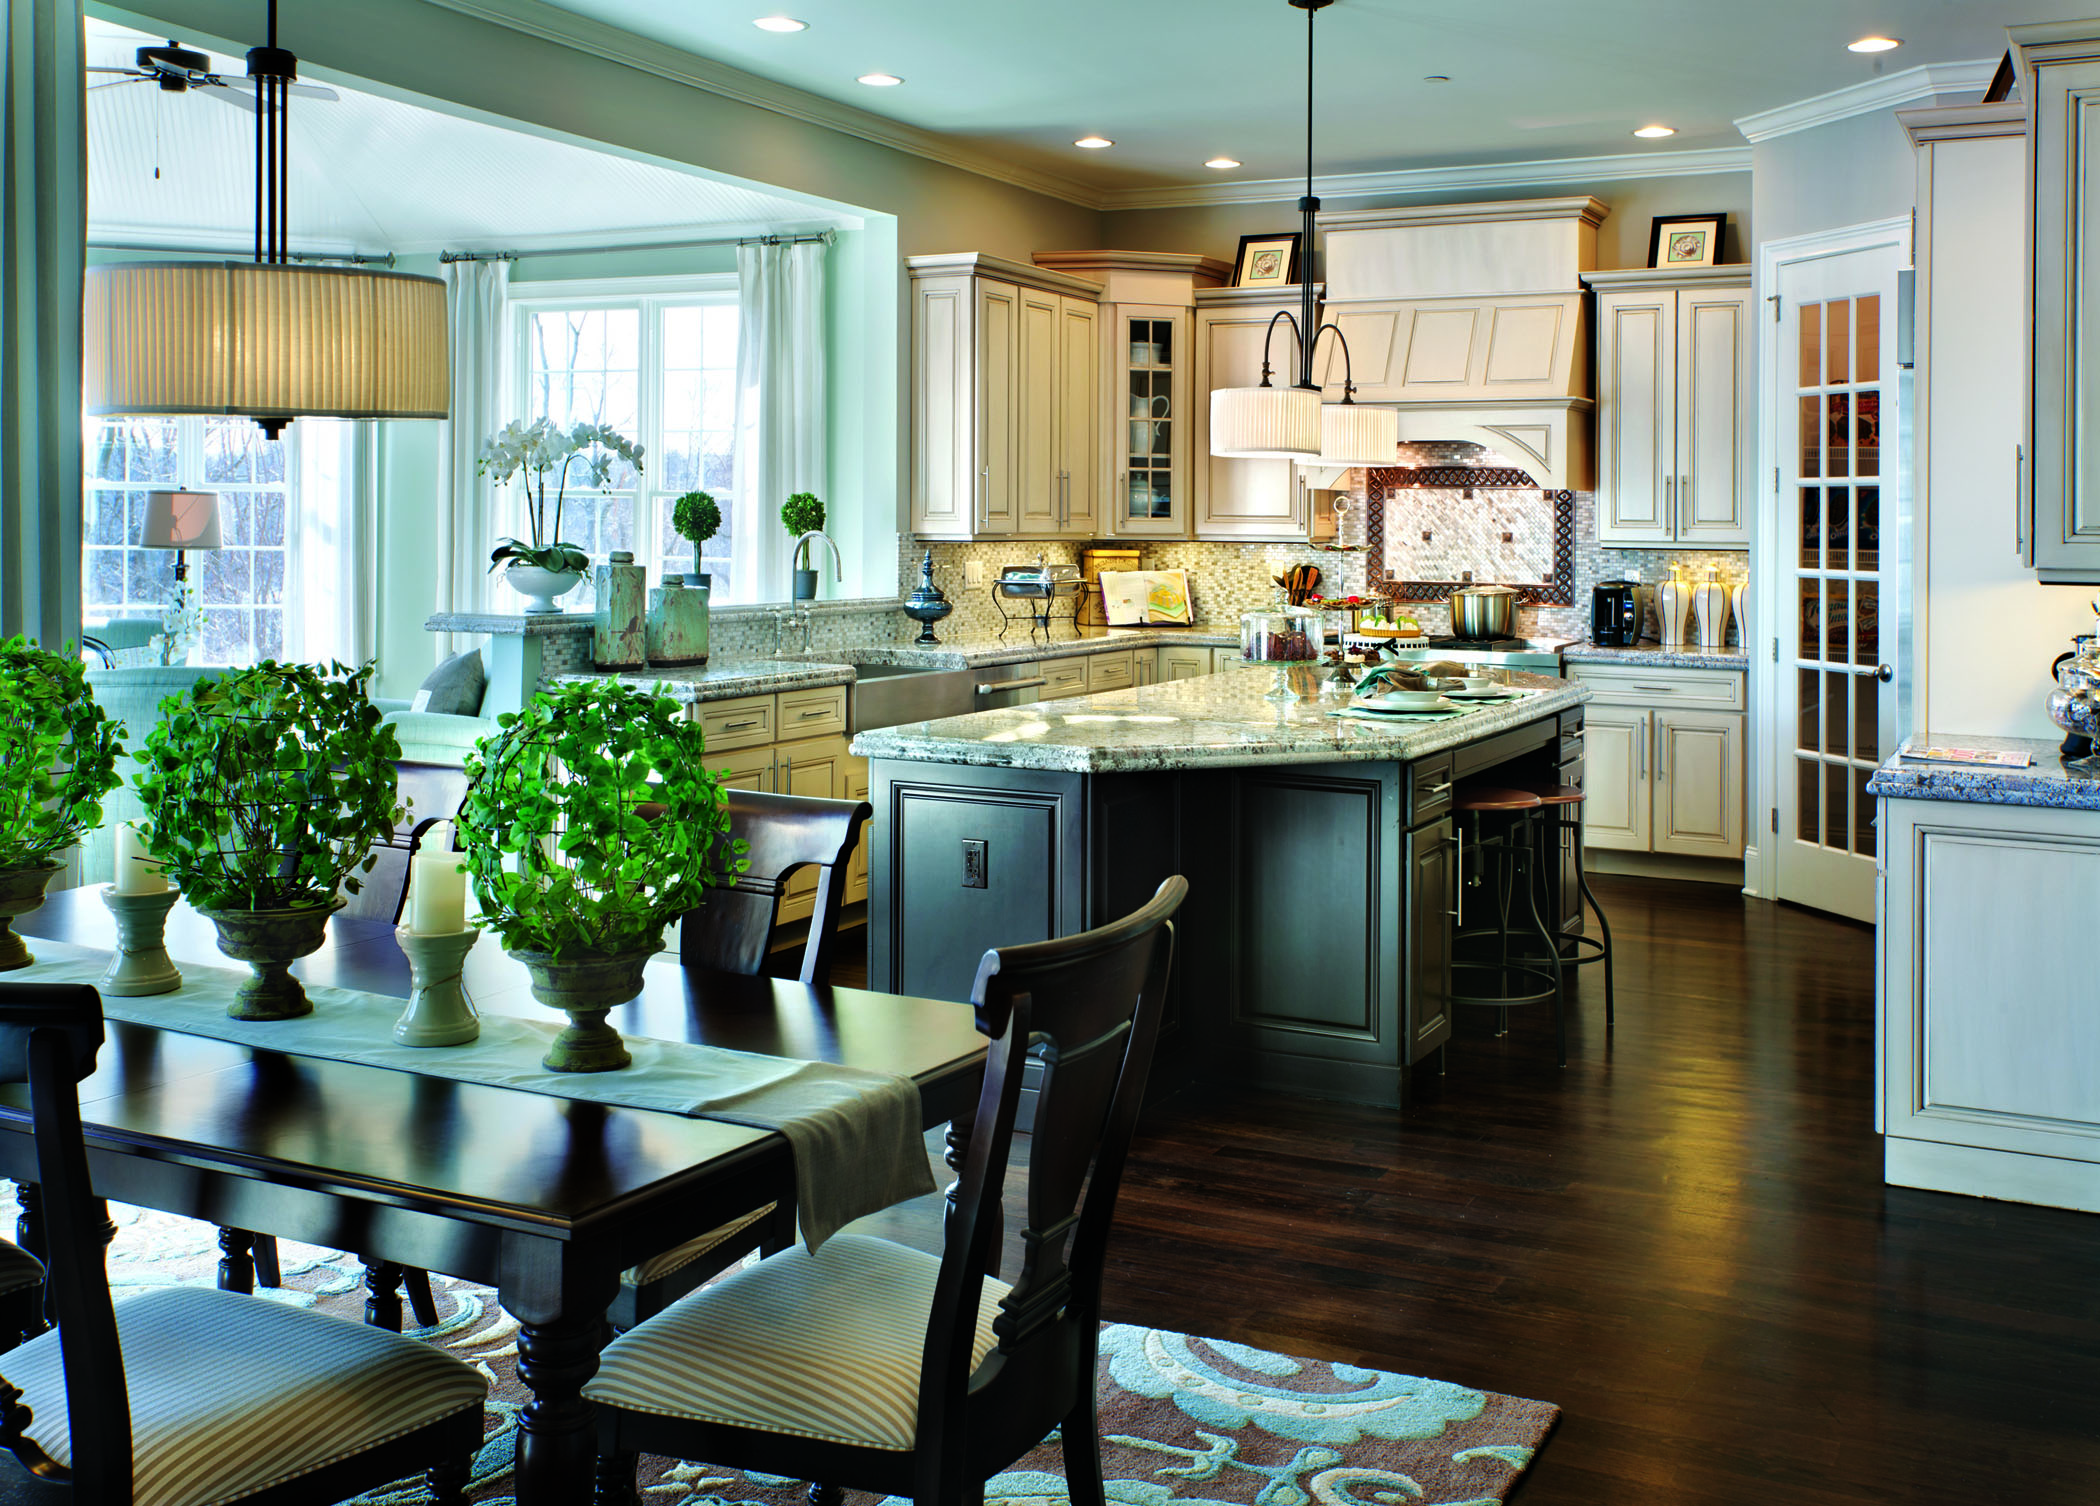 Limited Time Kitchen And Bath Upgrades Available At Toll Brothers Communities In Dutchess County